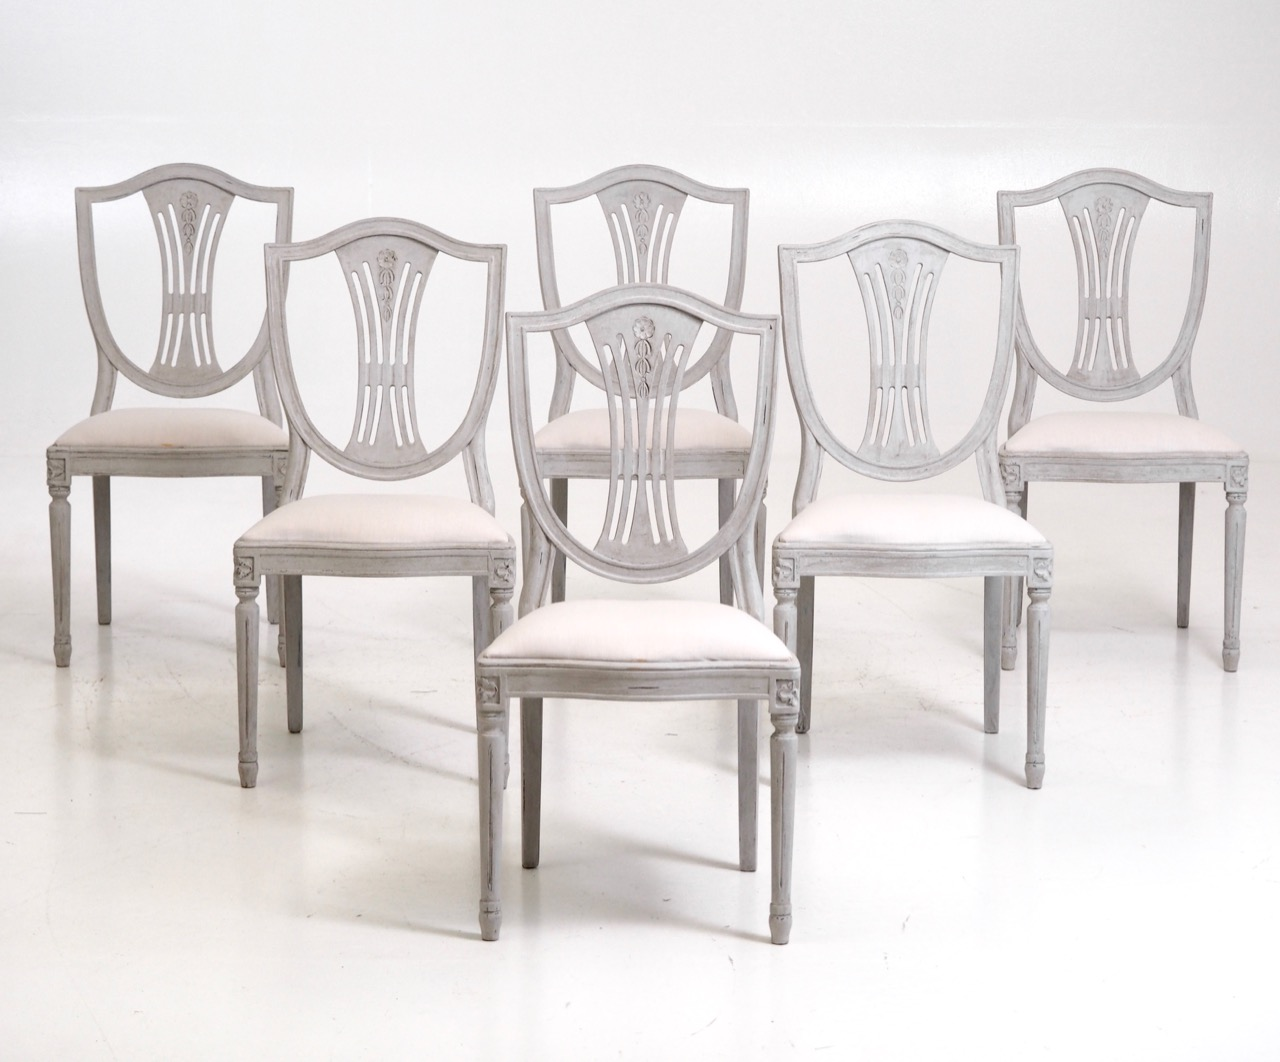 12587 6d Set Of 6 Swedish Chairs Circa 100 Years Old Selected Design Antiques